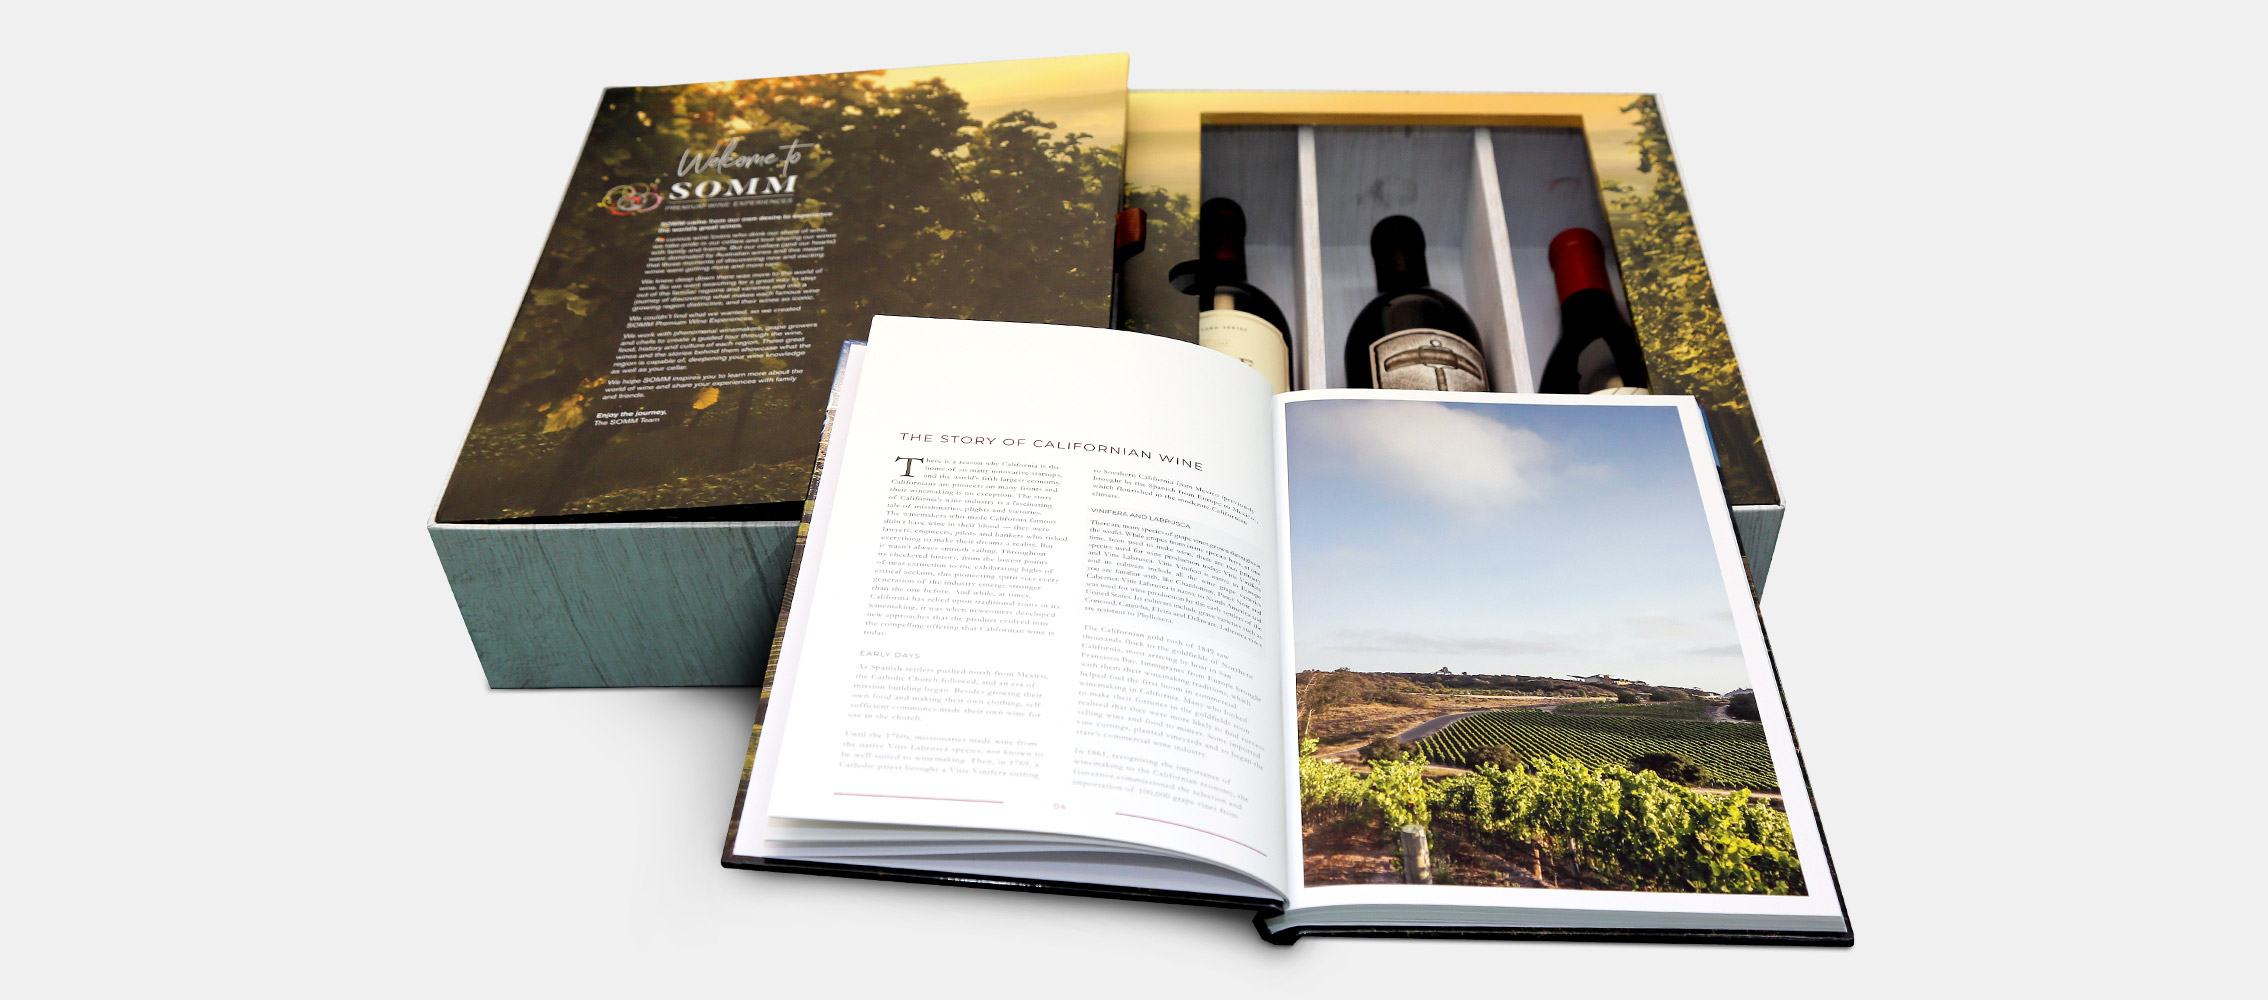 SOMM Outer Box Design Open Book